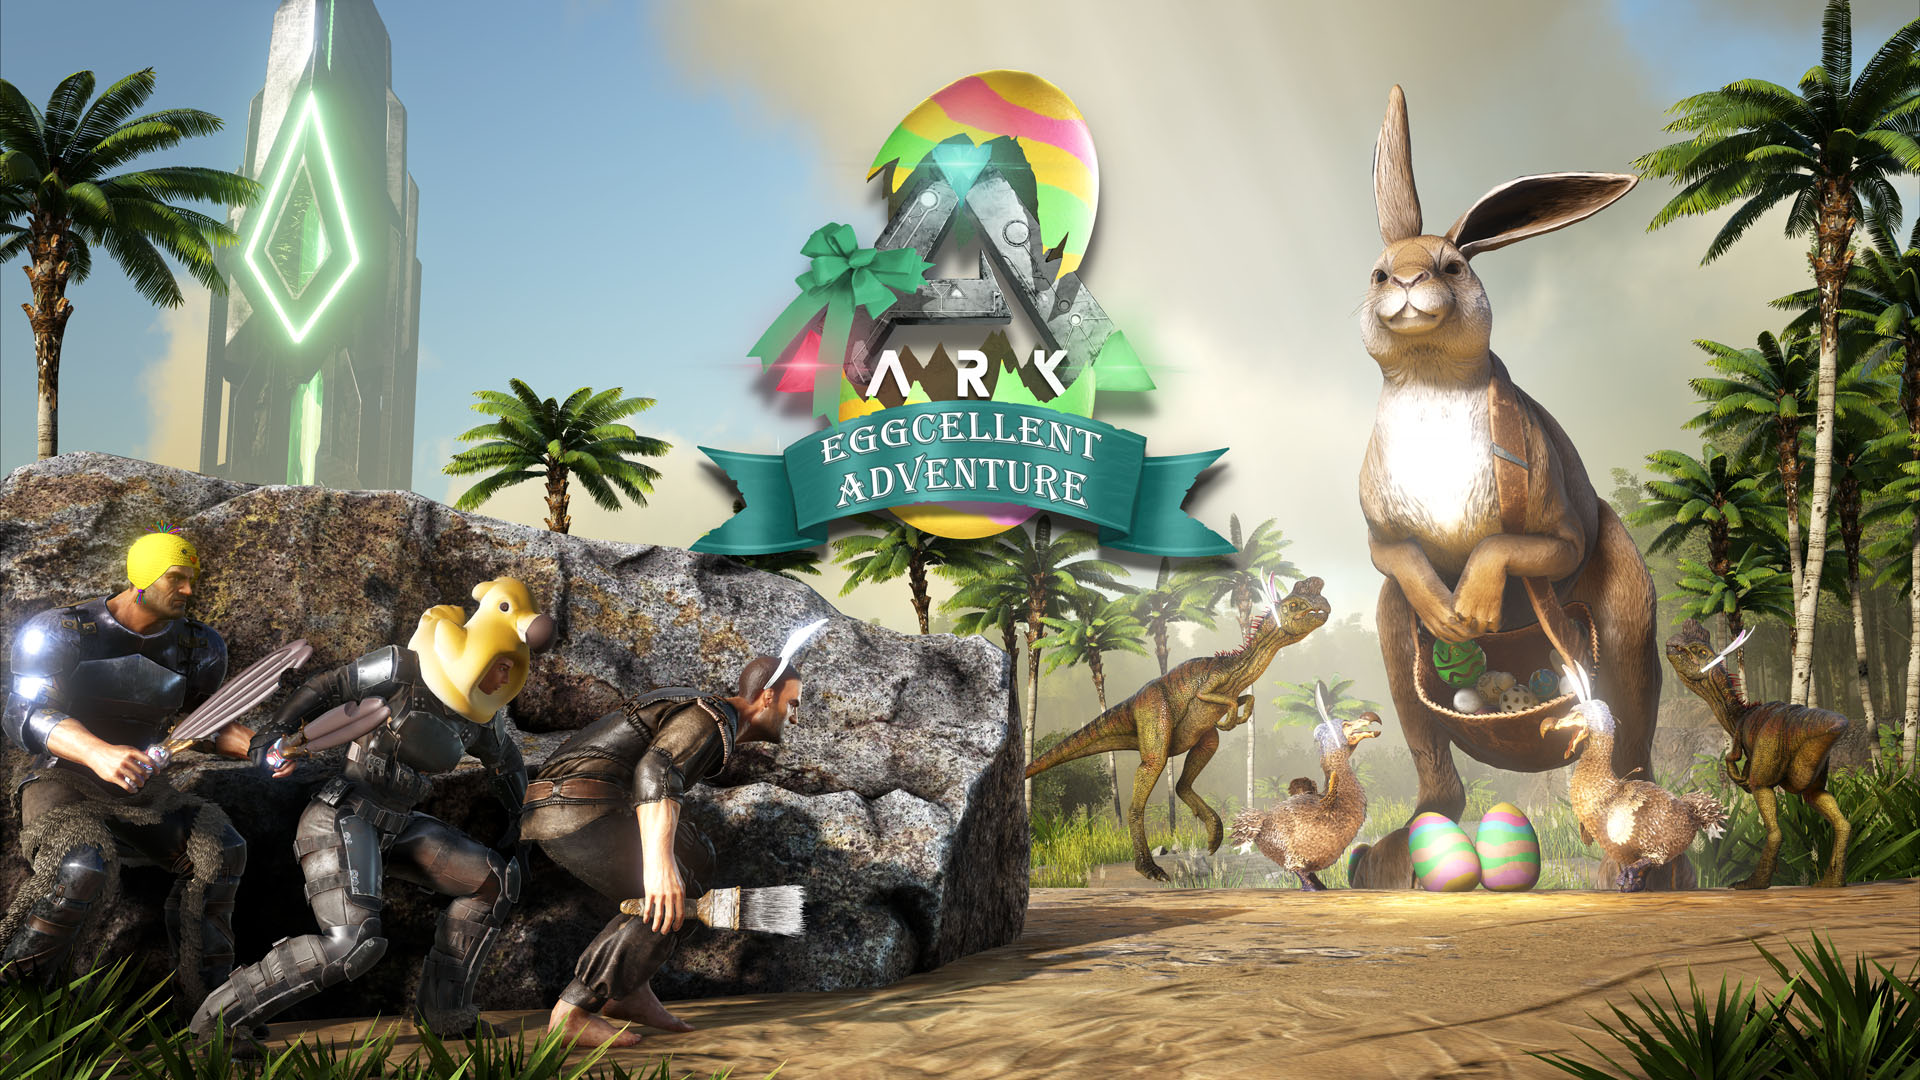 While we receive compensation when you click links to partners, they do not i. 'ARK' Eggcellent Adventure 6 Guide: Bunny Eggs, Chibis and Spawn Codes, Explained